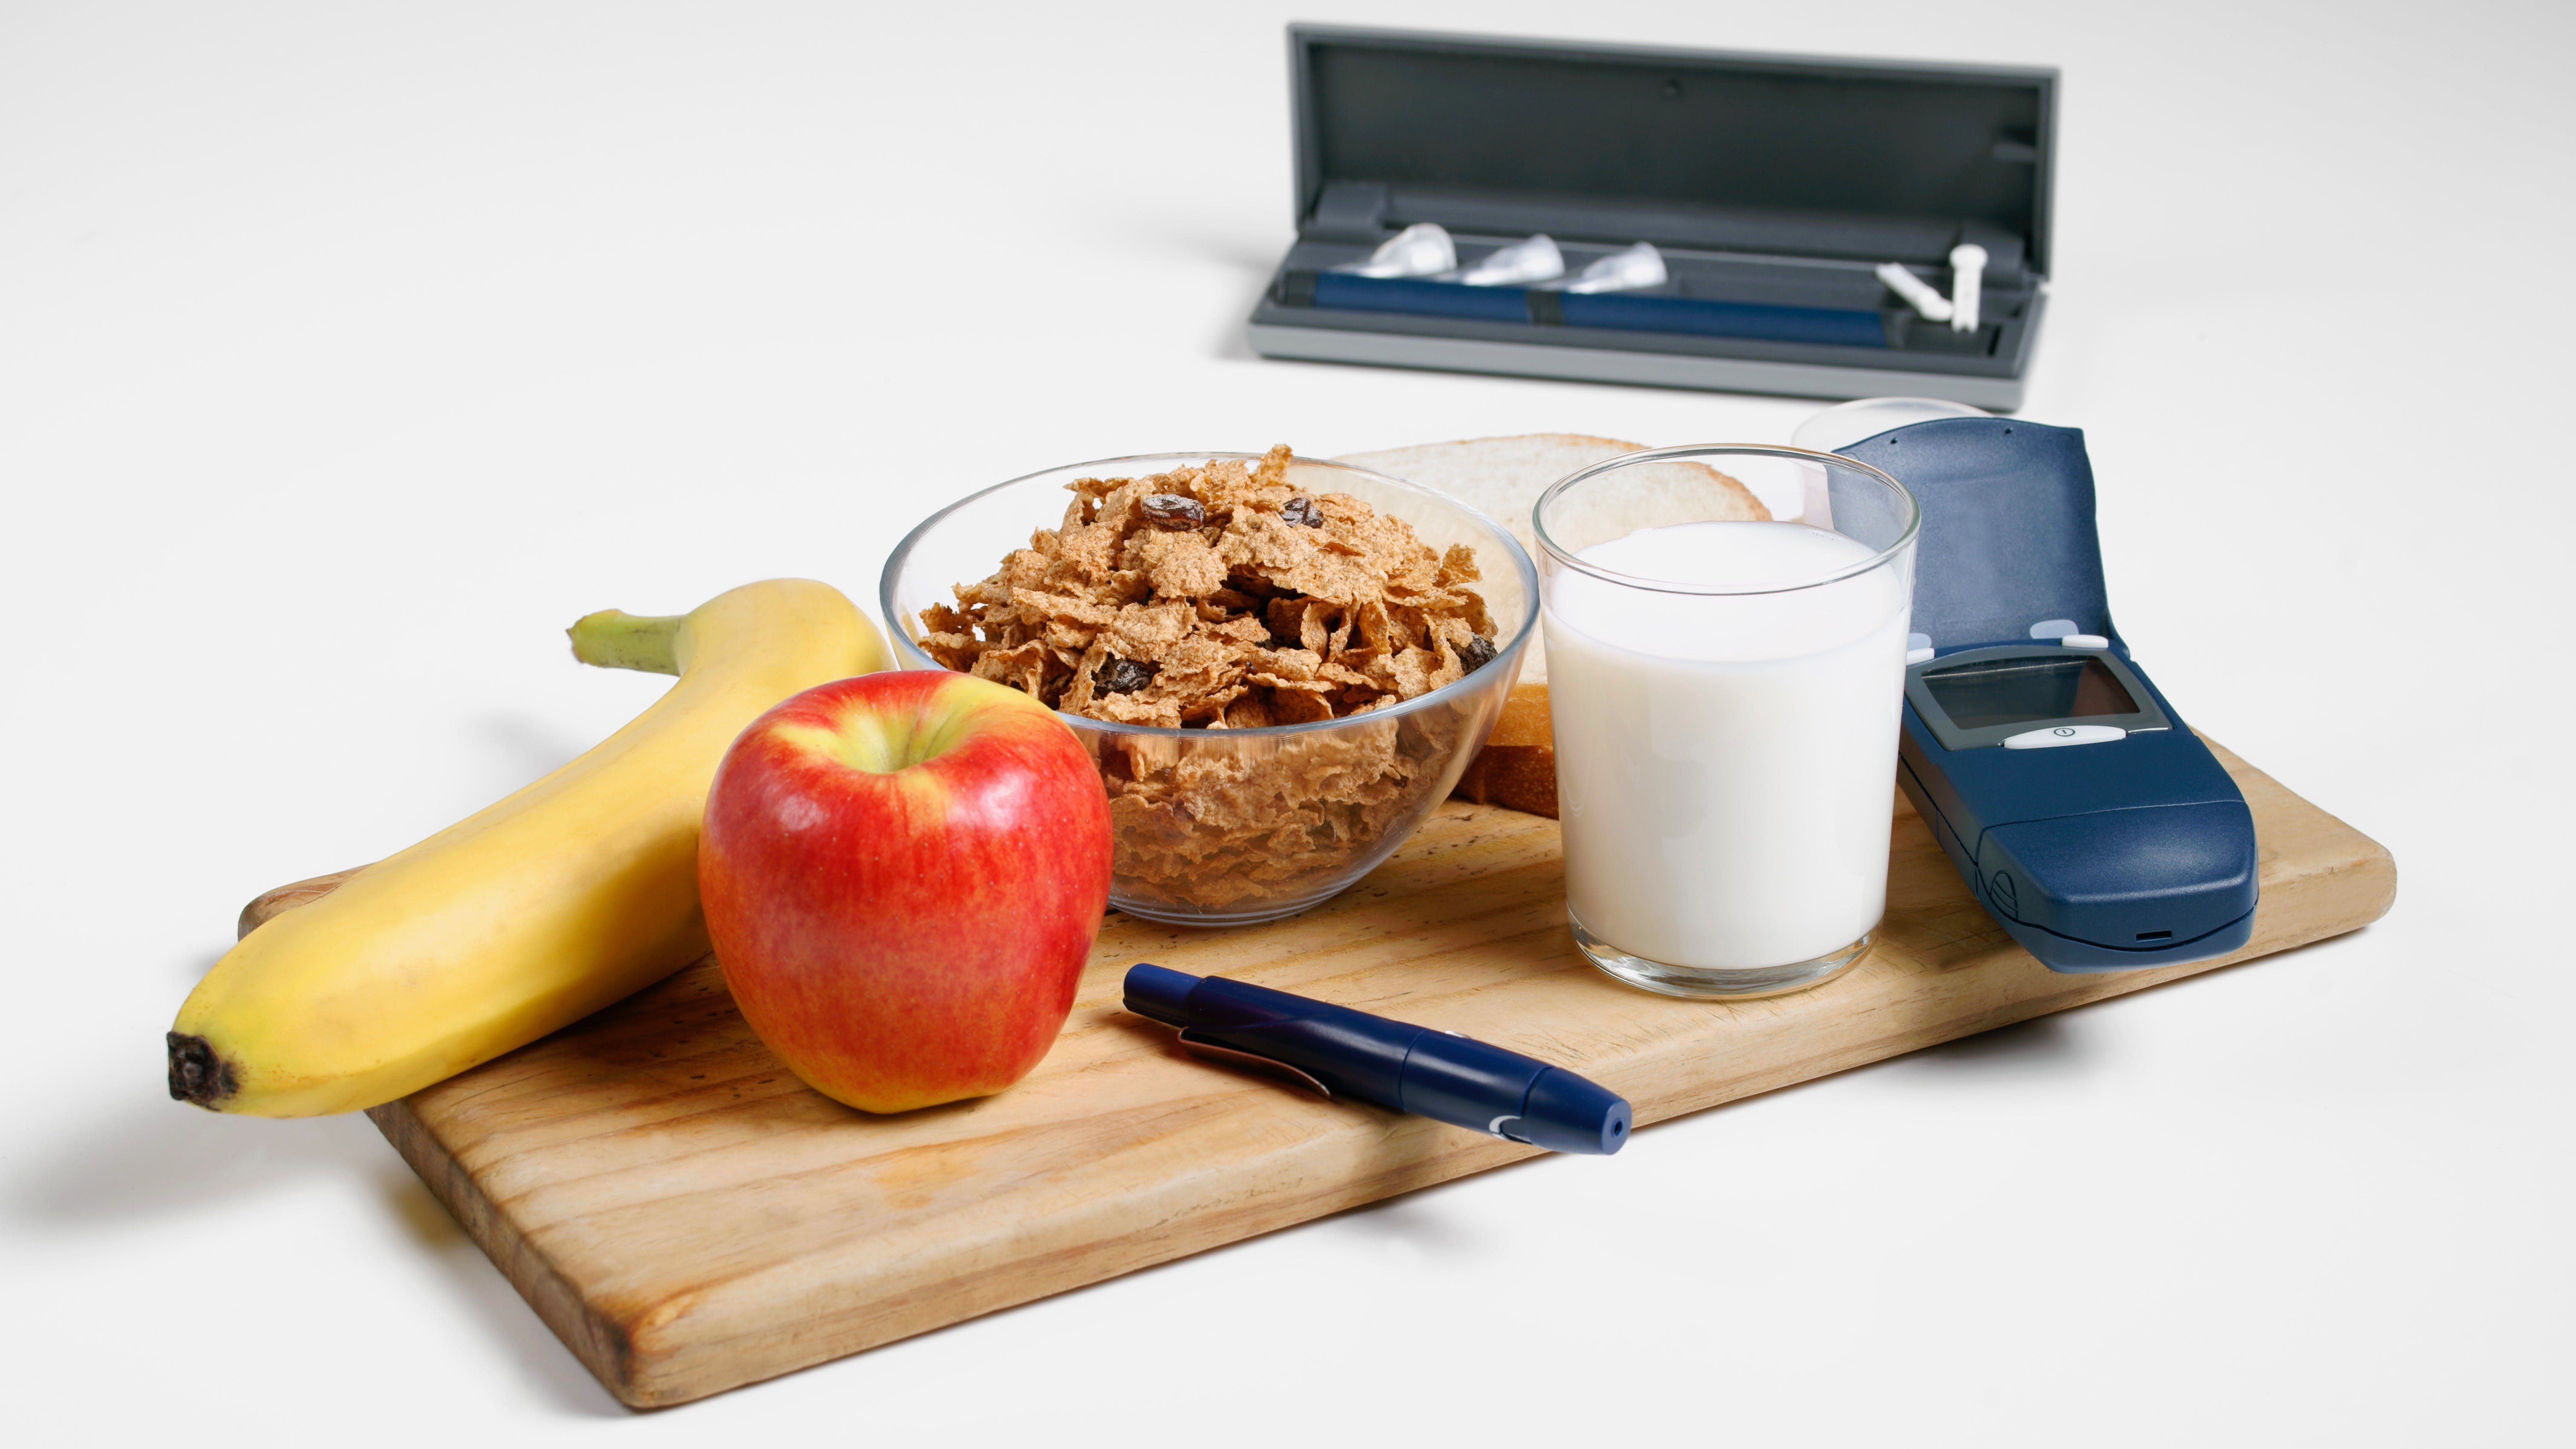 Healthy diabetic breakfast with testing and delivery devices